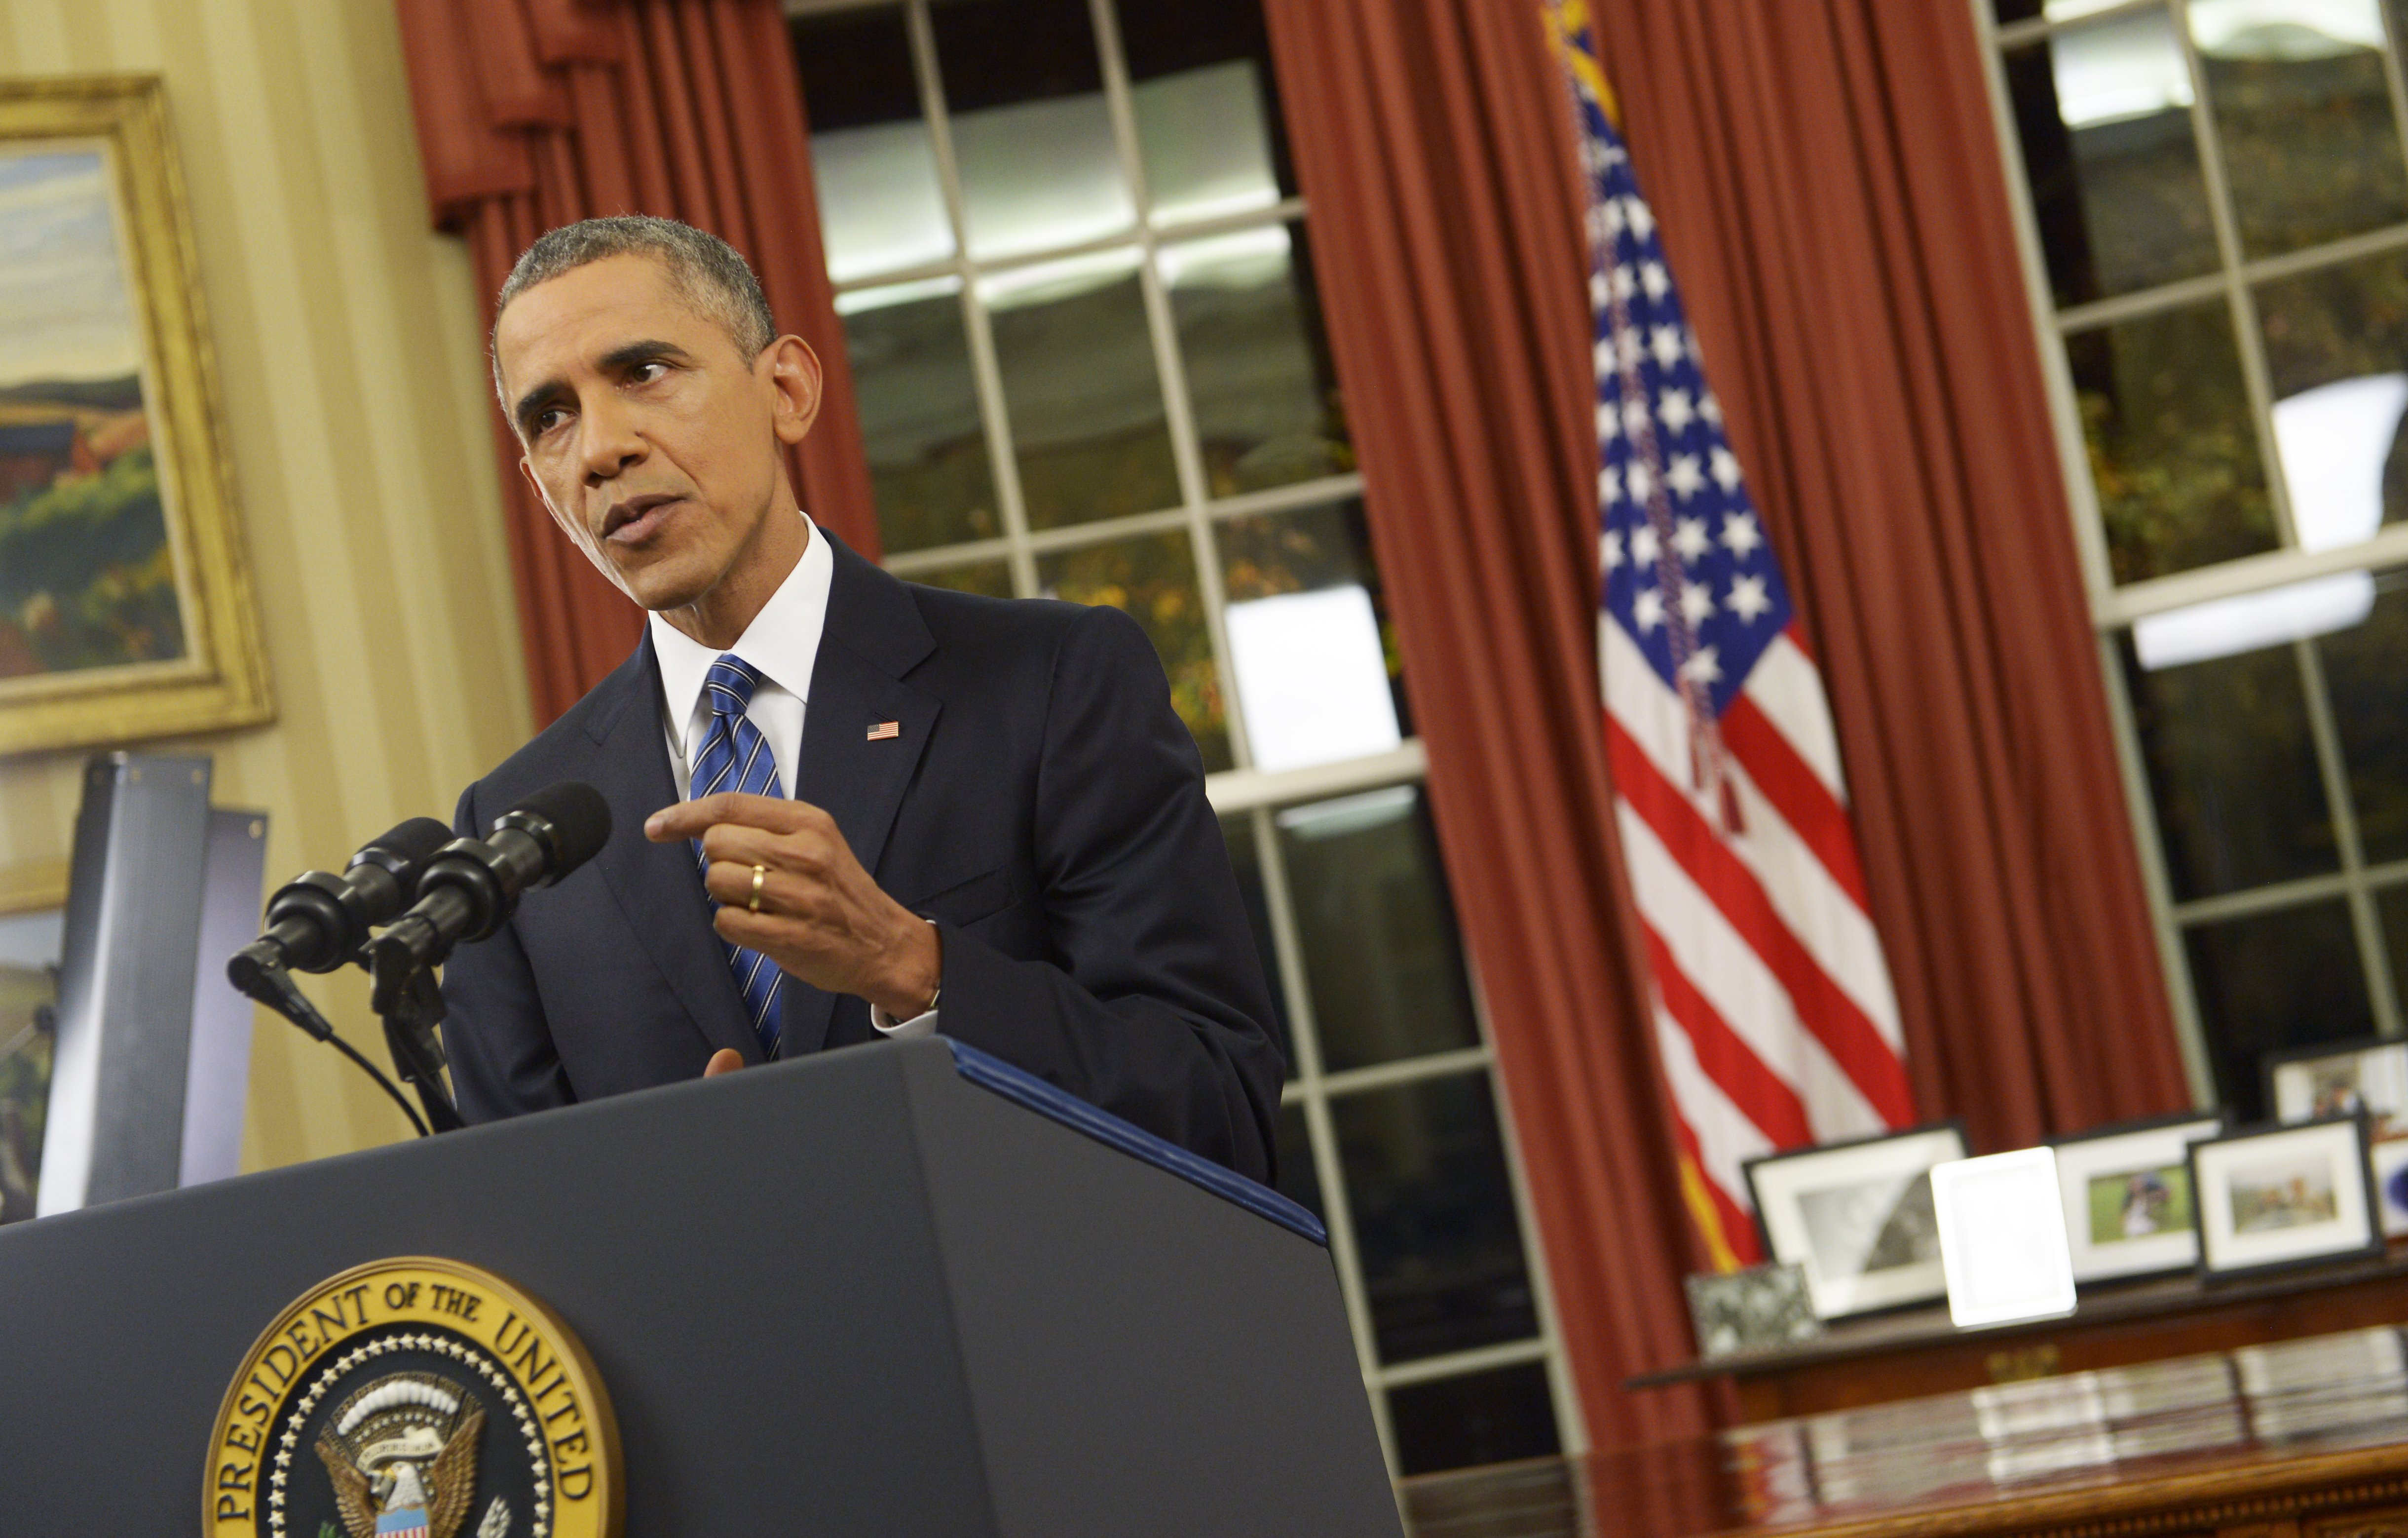 President Barack Obama talks about terrorism in an Oval Office speech on December 6, 2015.